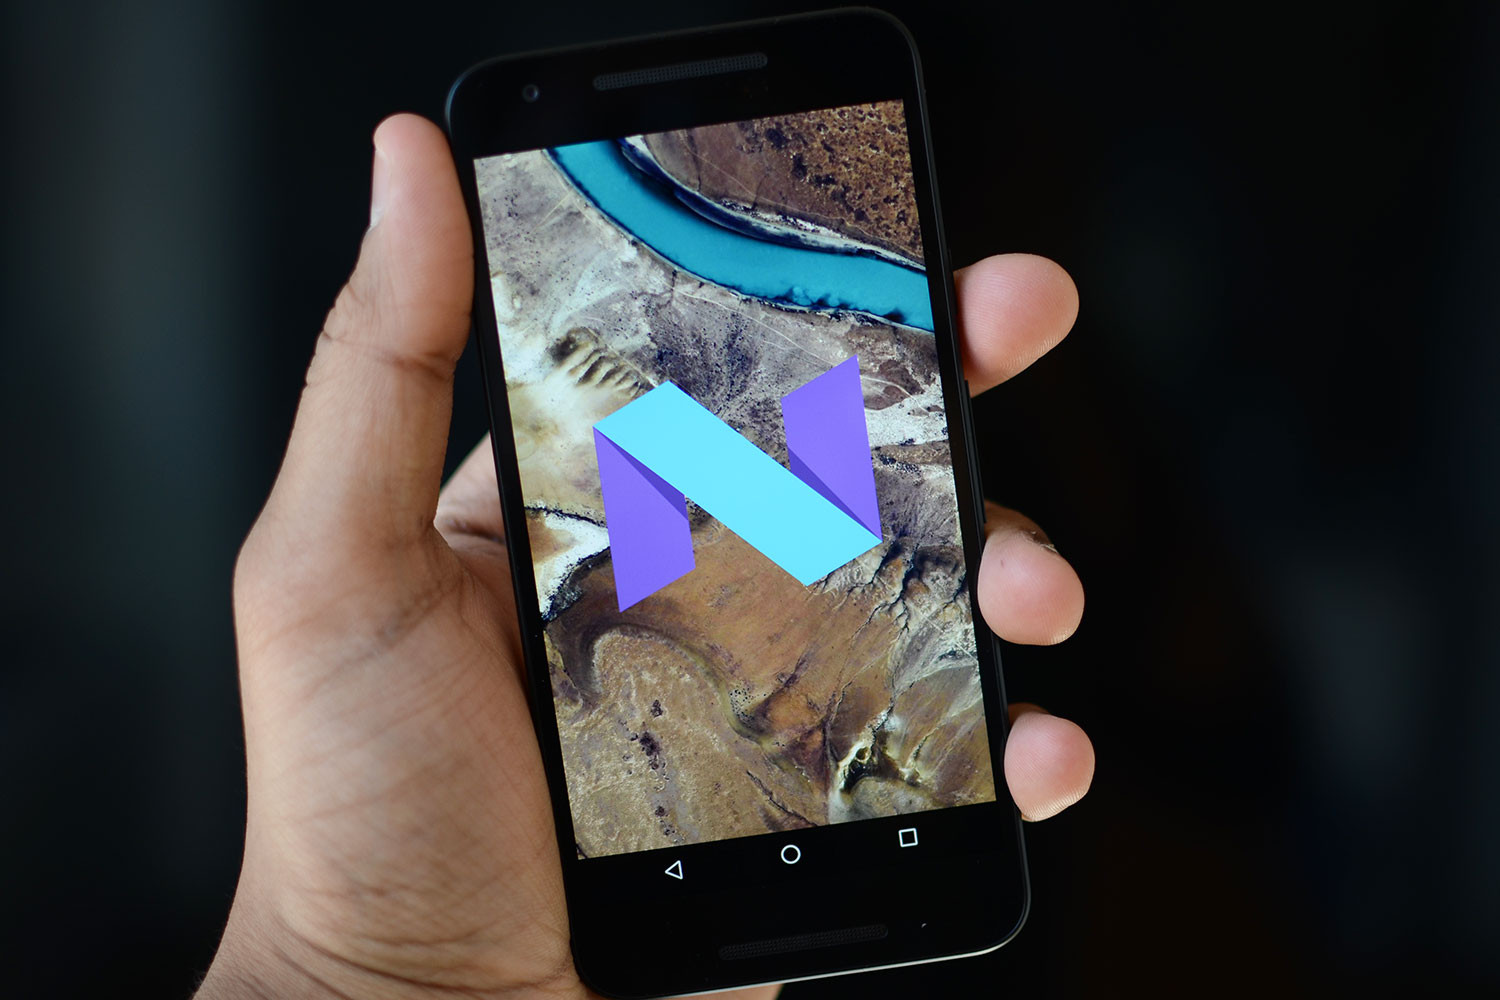 Google Camera 4.1 updates come with a new twist for selfies